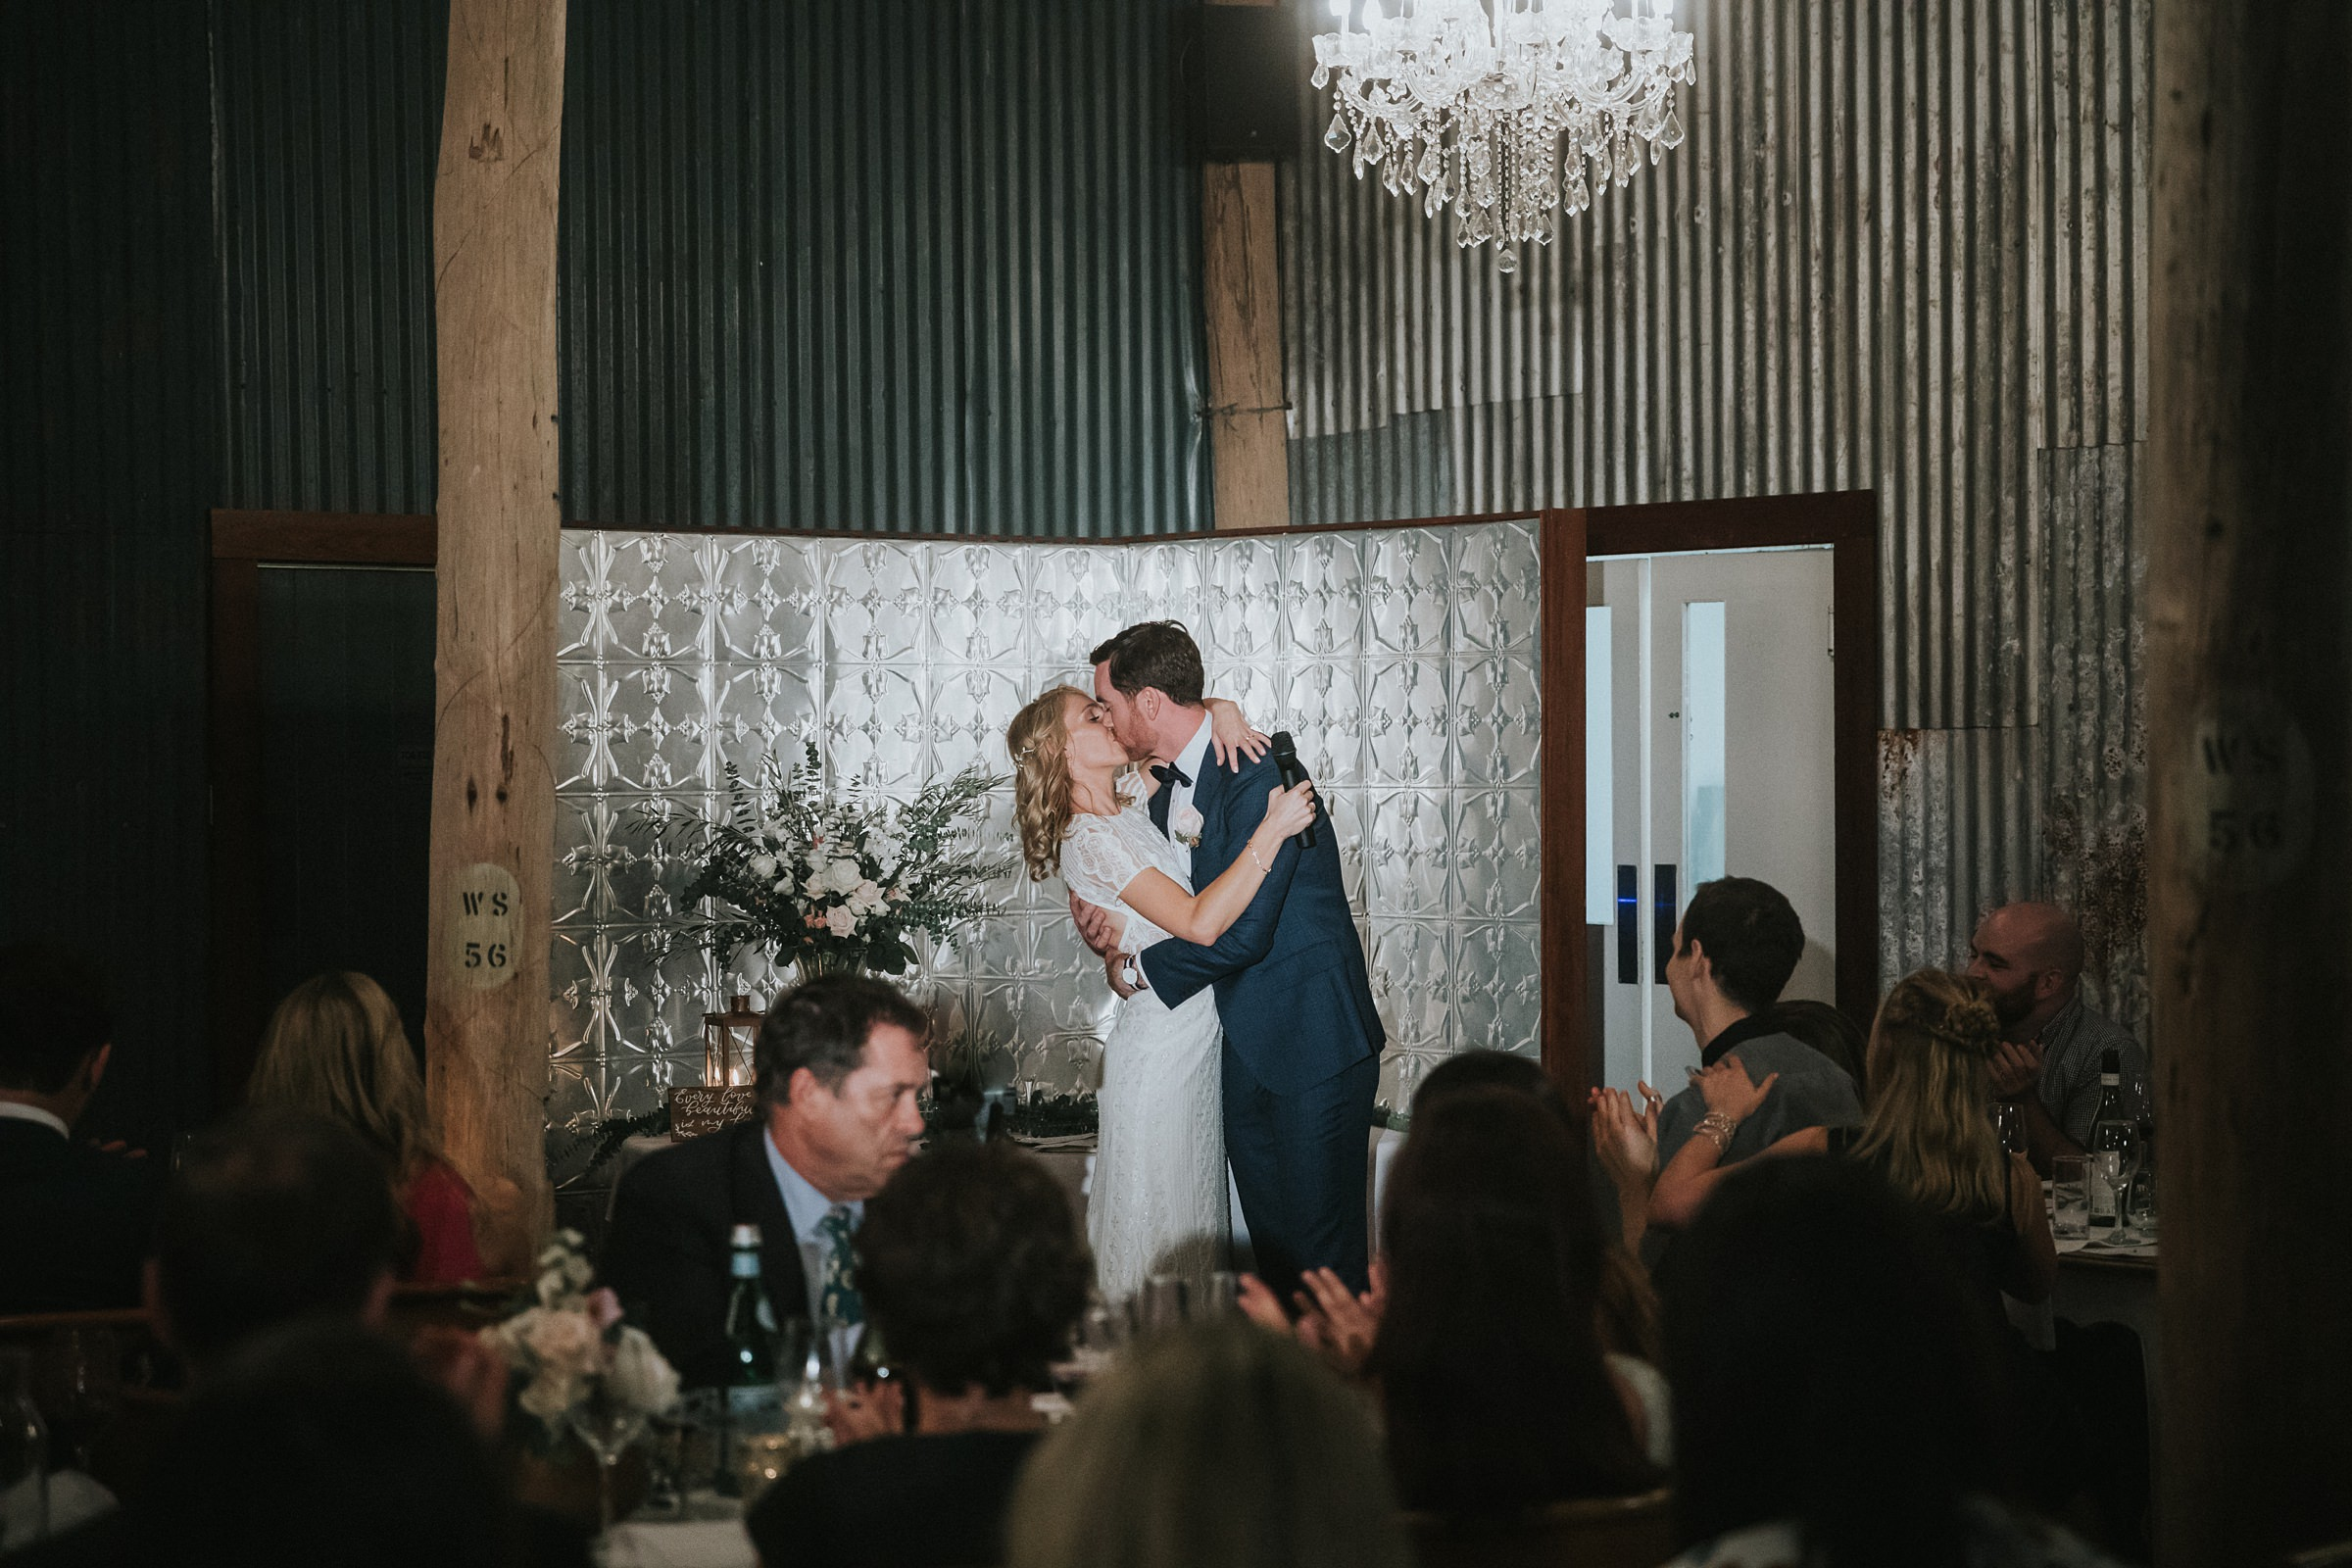 passionate kiss for the bride and groom photographs by jonathan david